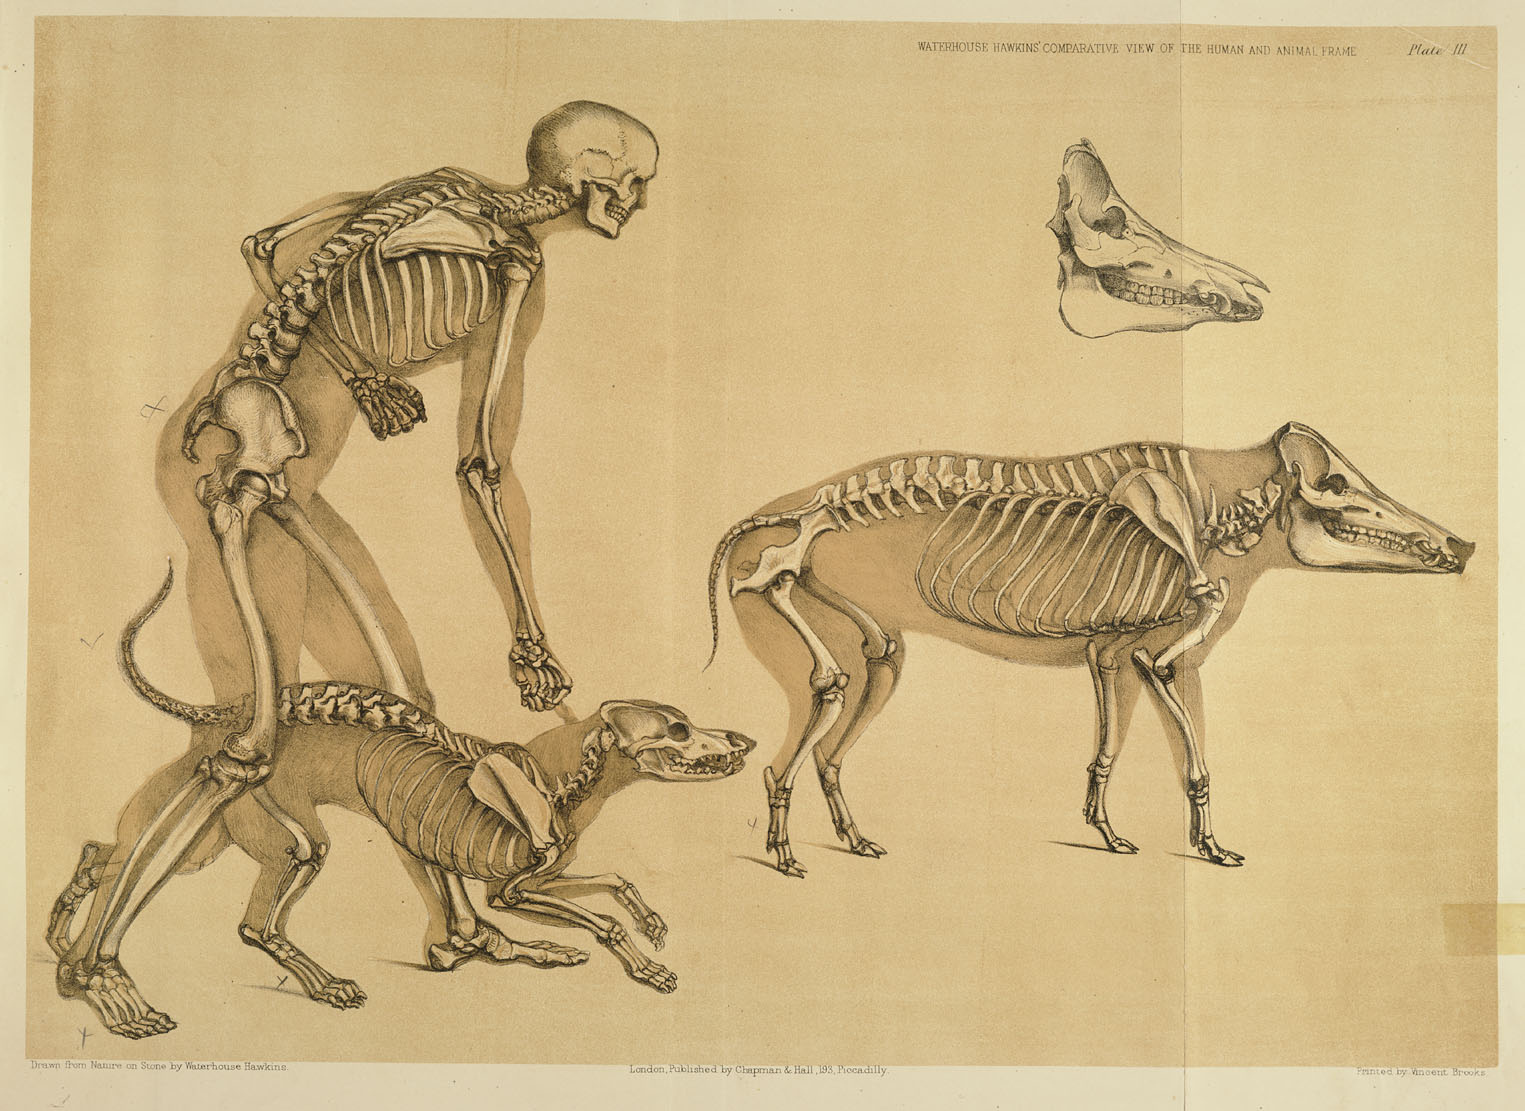 History Of Science A Comparative View Of The Human And Animal Frame